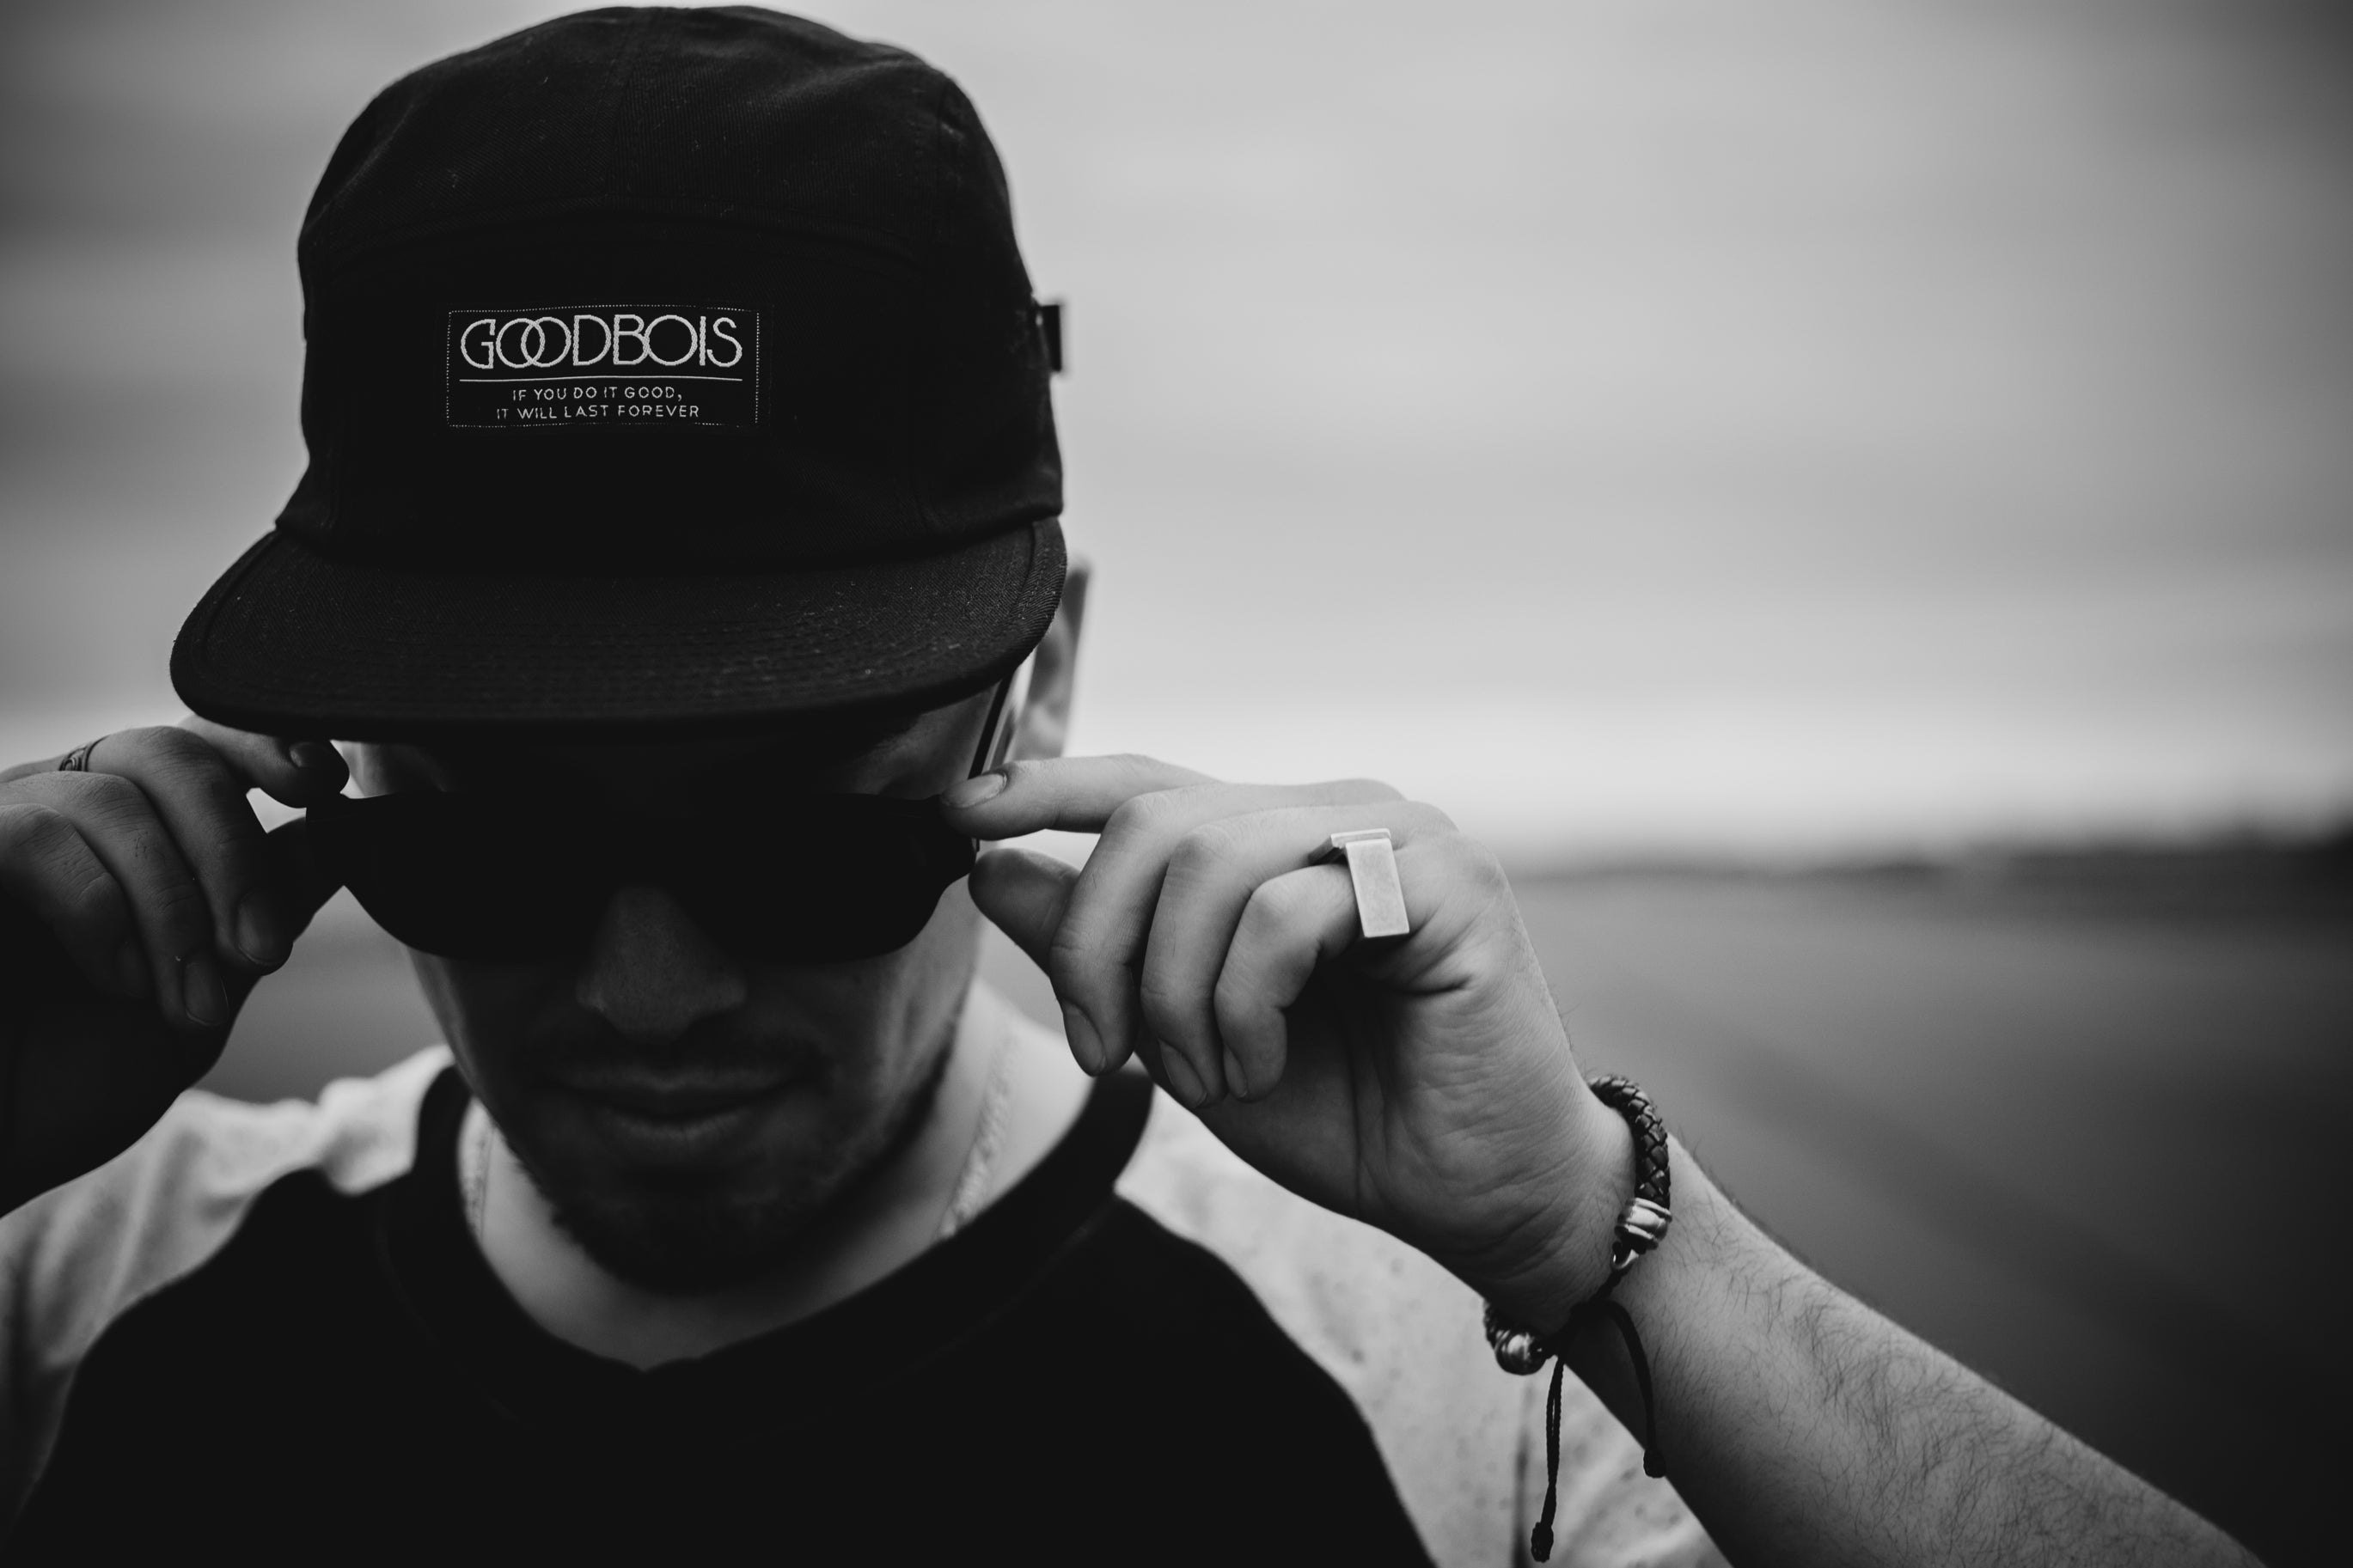 SOULECTION x GOODBOIS x SIGNATURE SERIES 2014